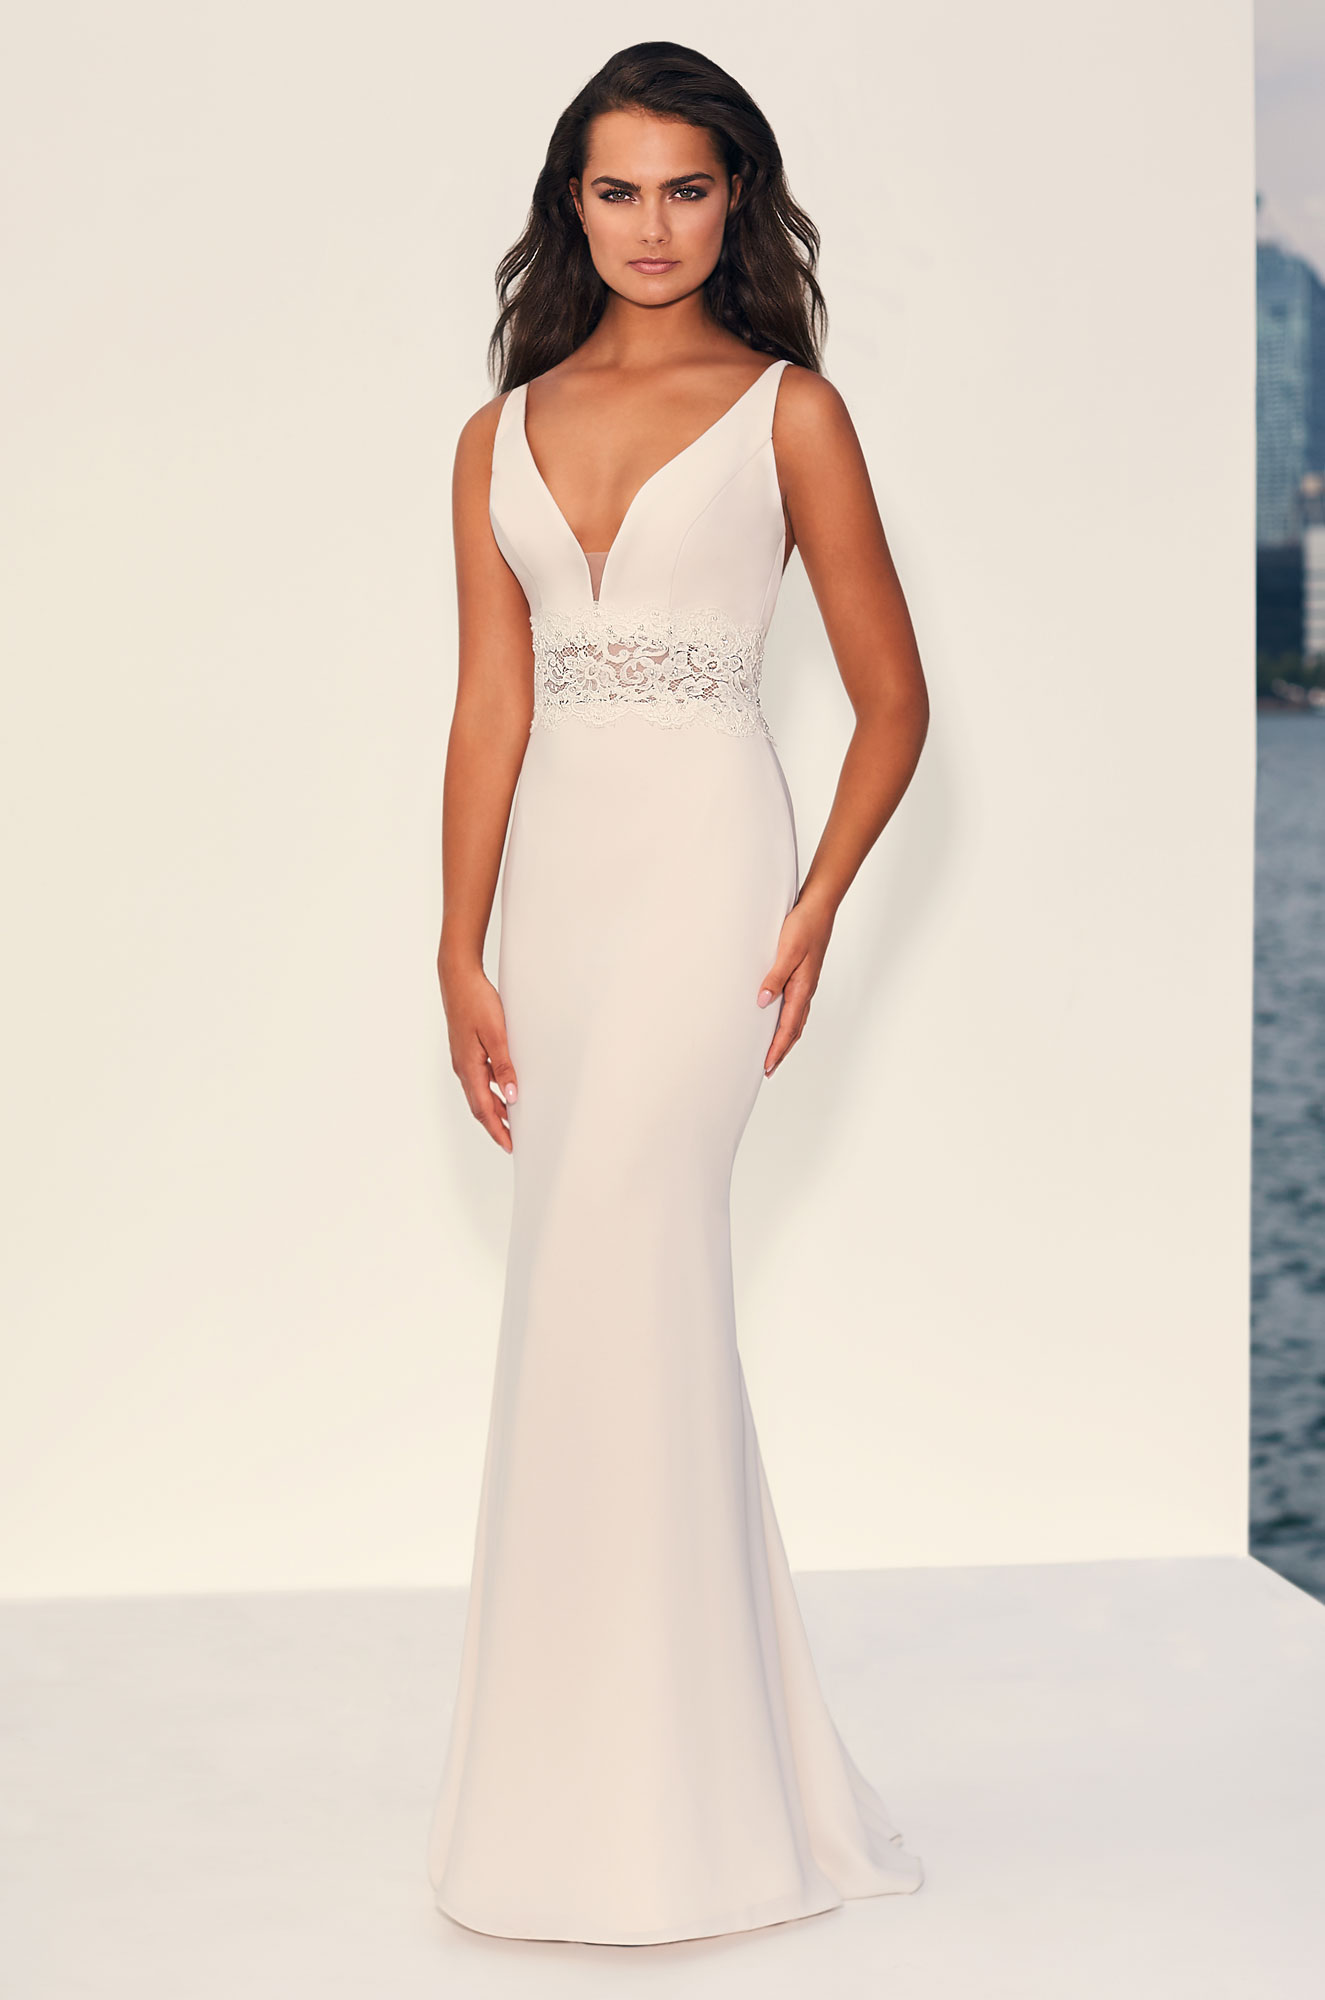 Beaded Lace Midriff Satin Wedding Dress Style 4837